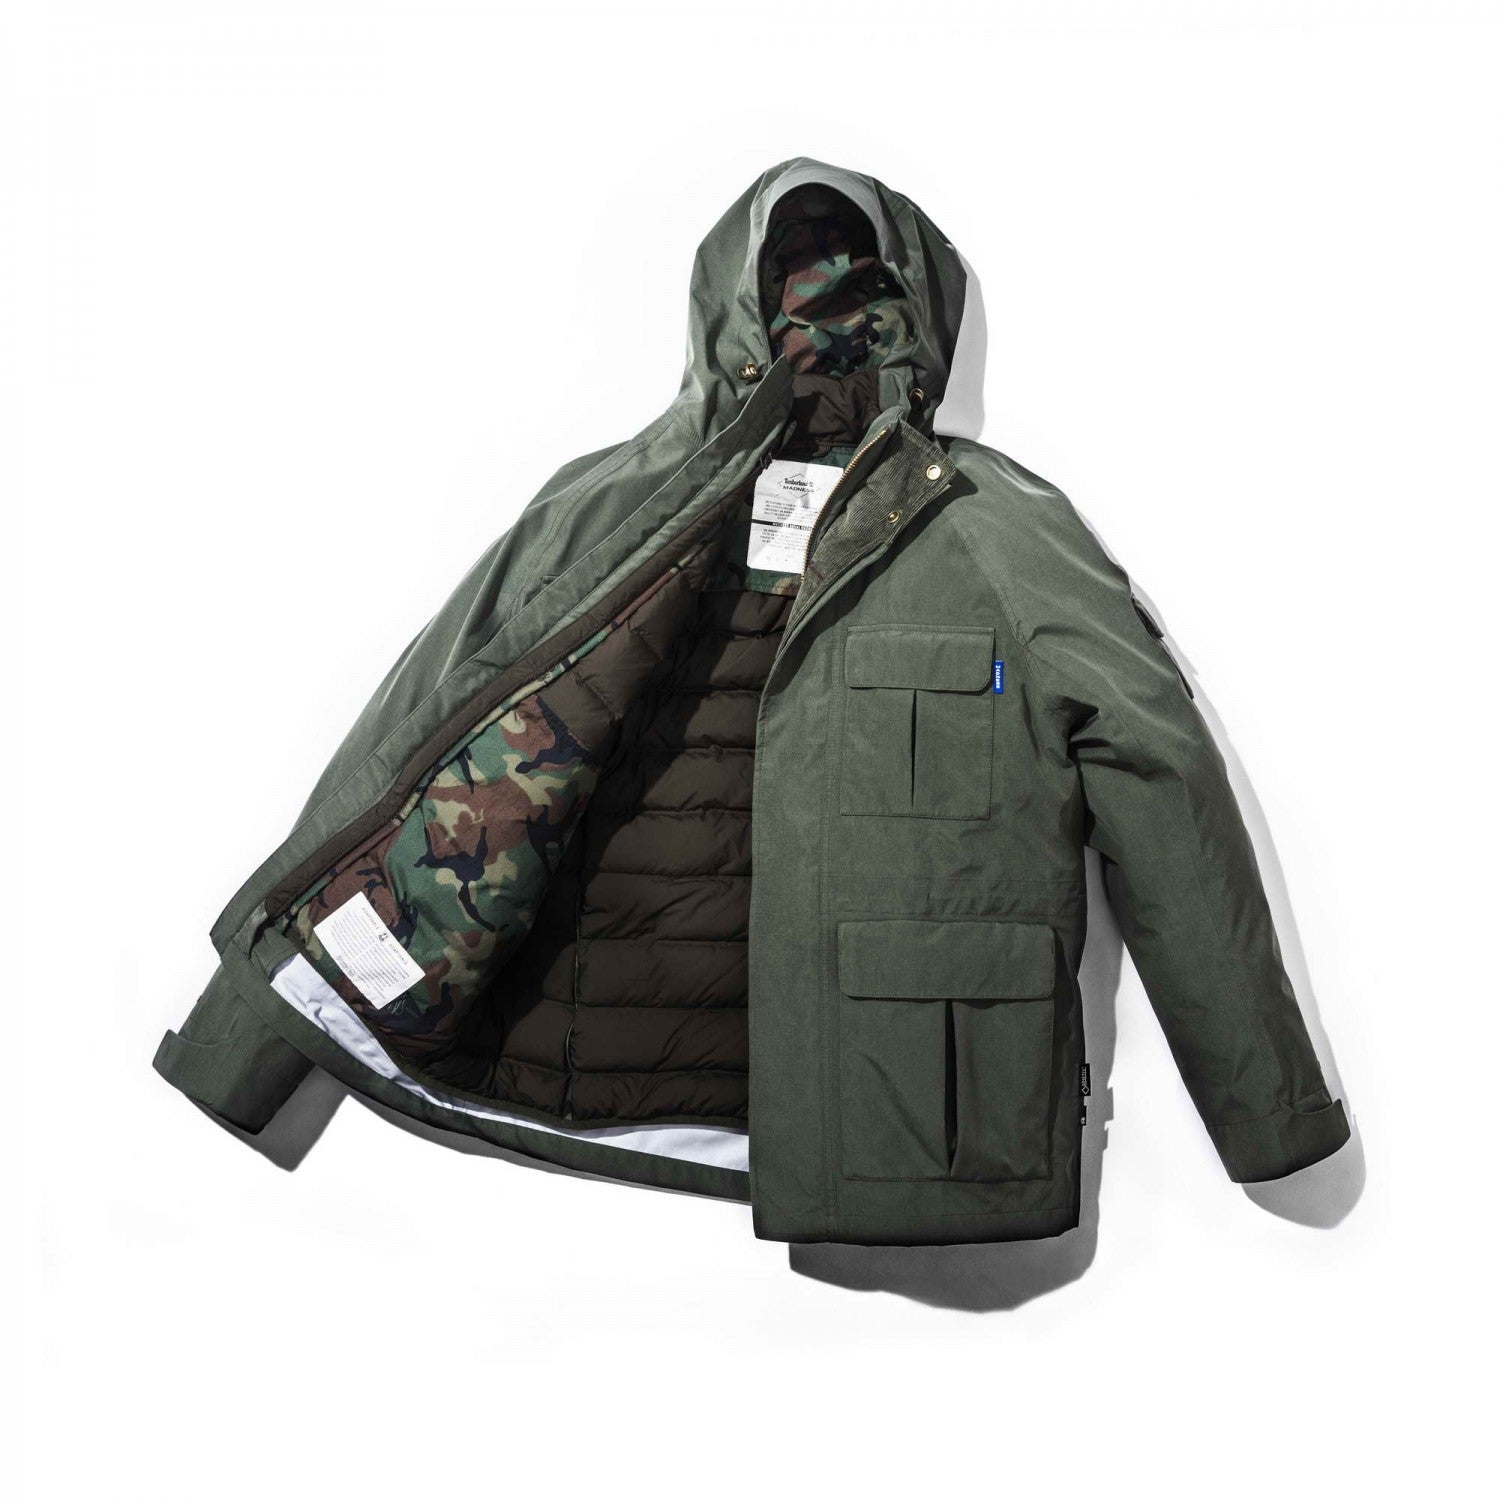 MDNS x Timberland Bear Head Down Jacket